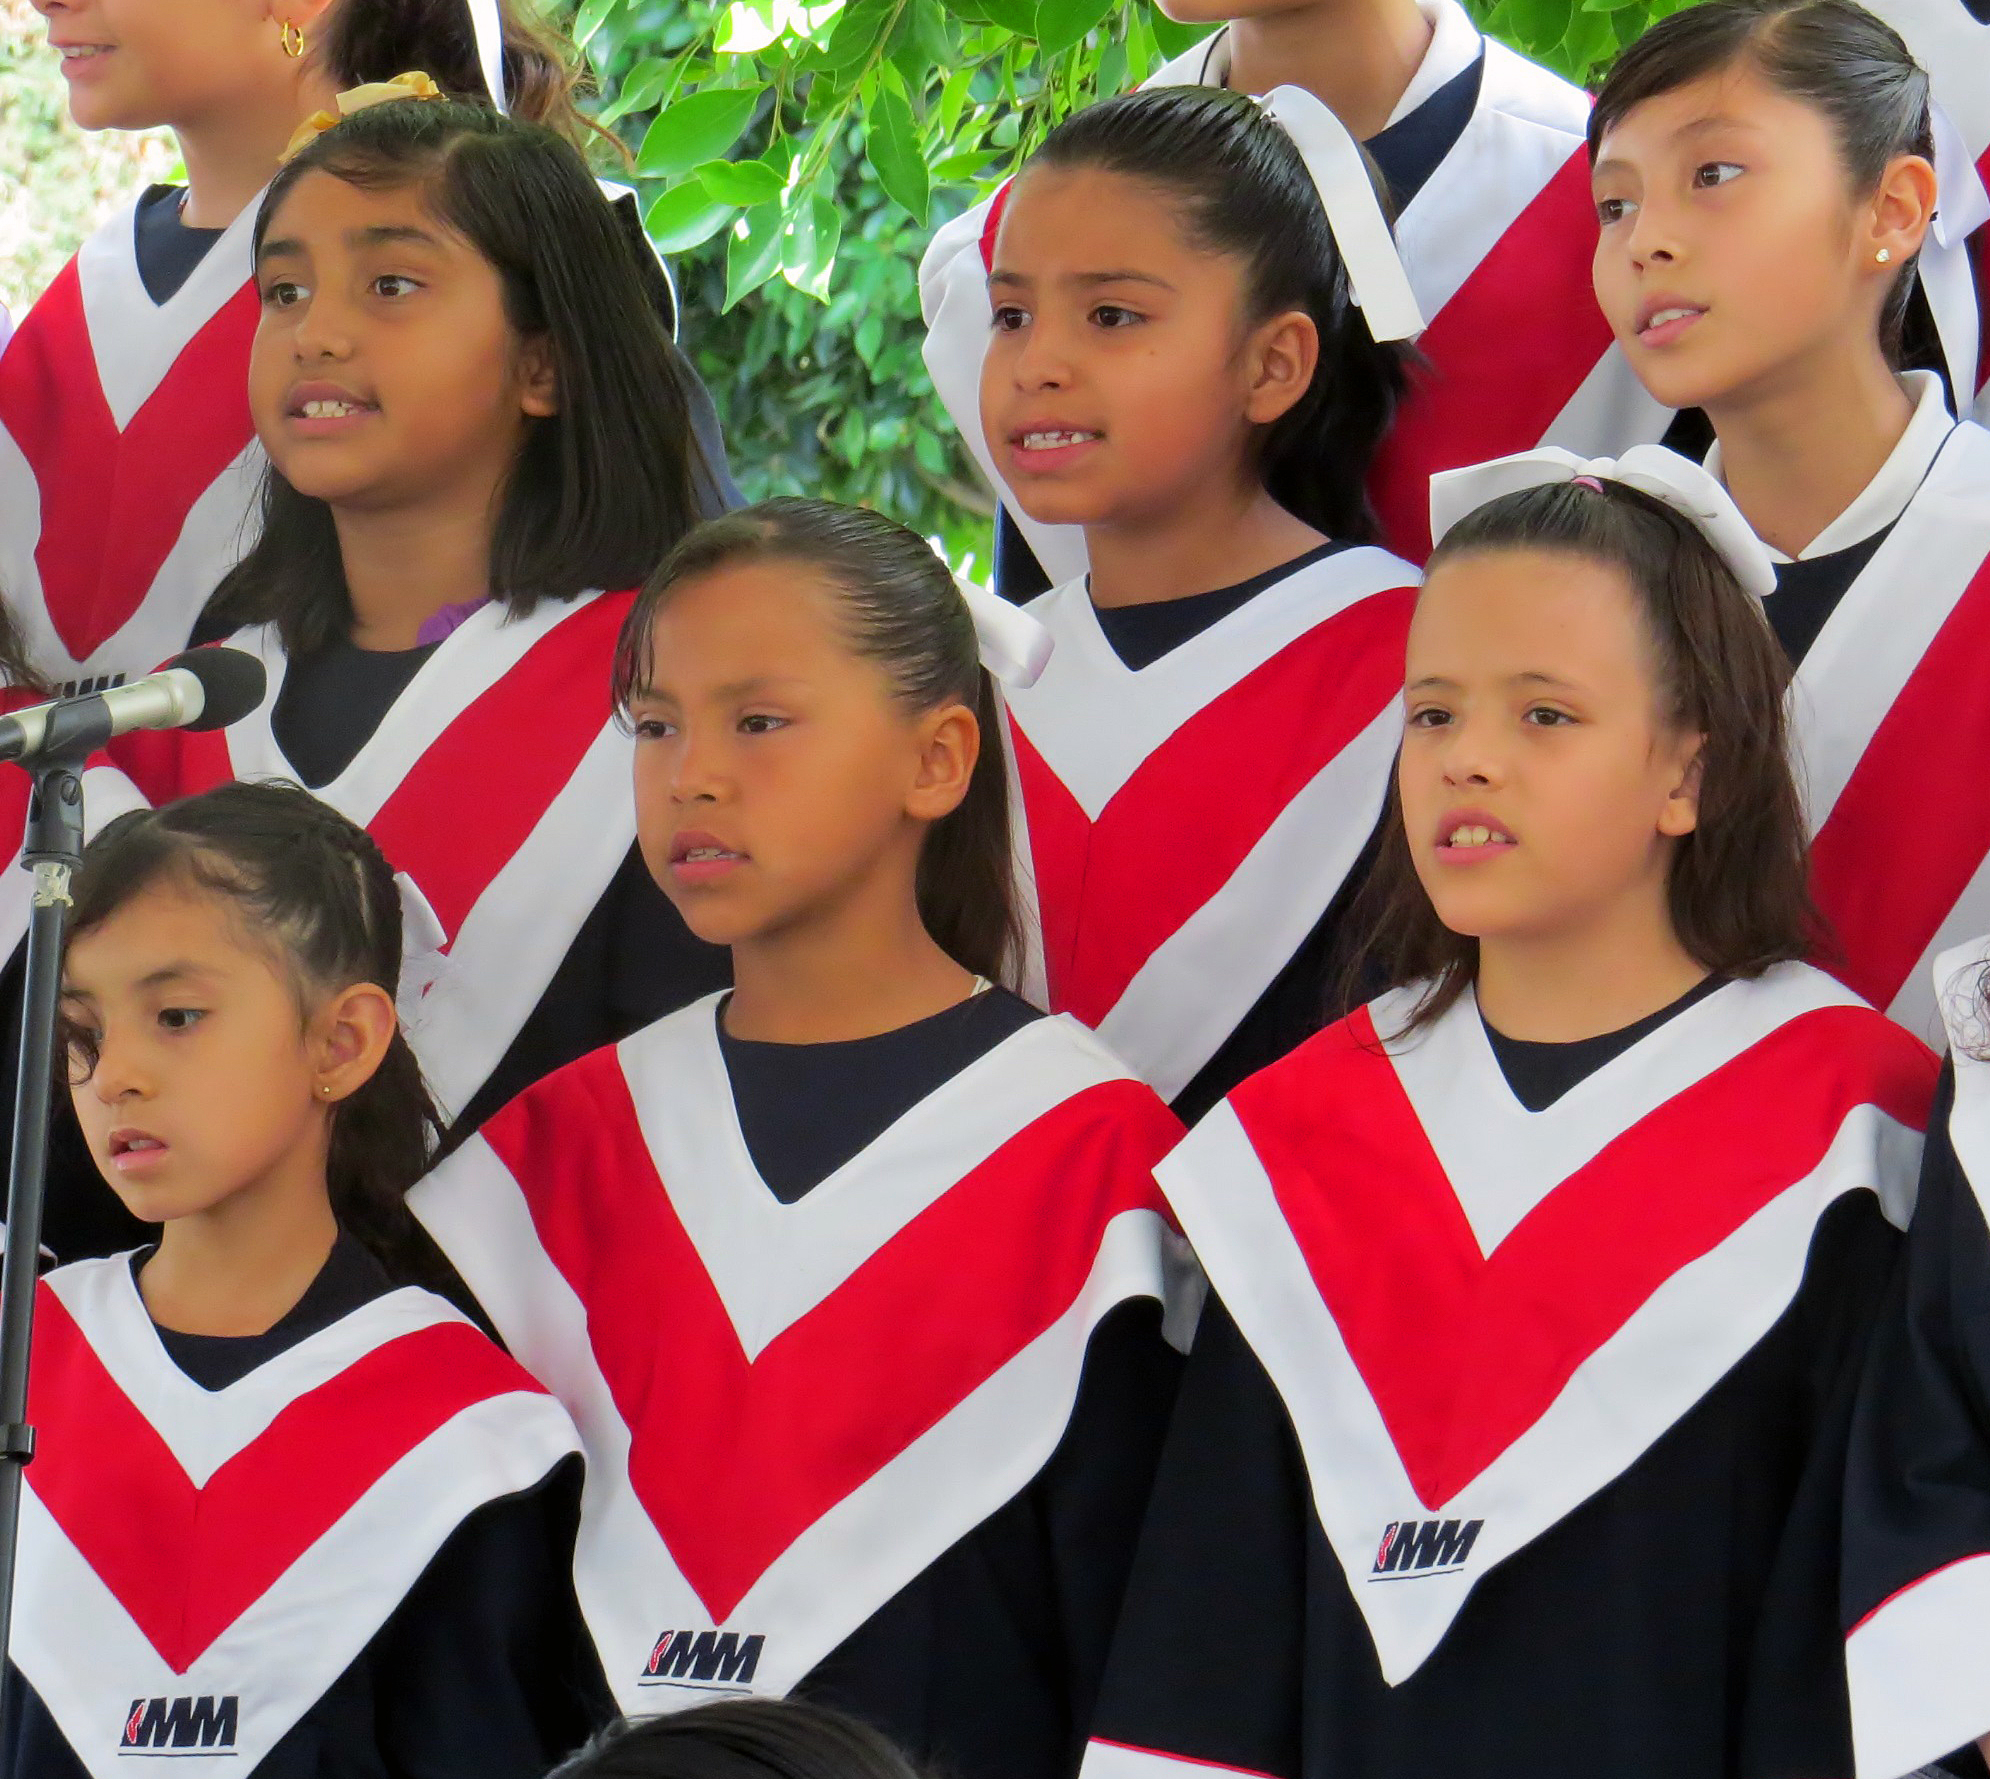 A choir from the local Methodist school performs as part of May 28 opening festivities at the International Association of Methodist-related Schools, Colleges and Universities conference, on the campus of Universidad Madero, in Puebla, Mexico. Photo by Sam Hodges, UMNS.